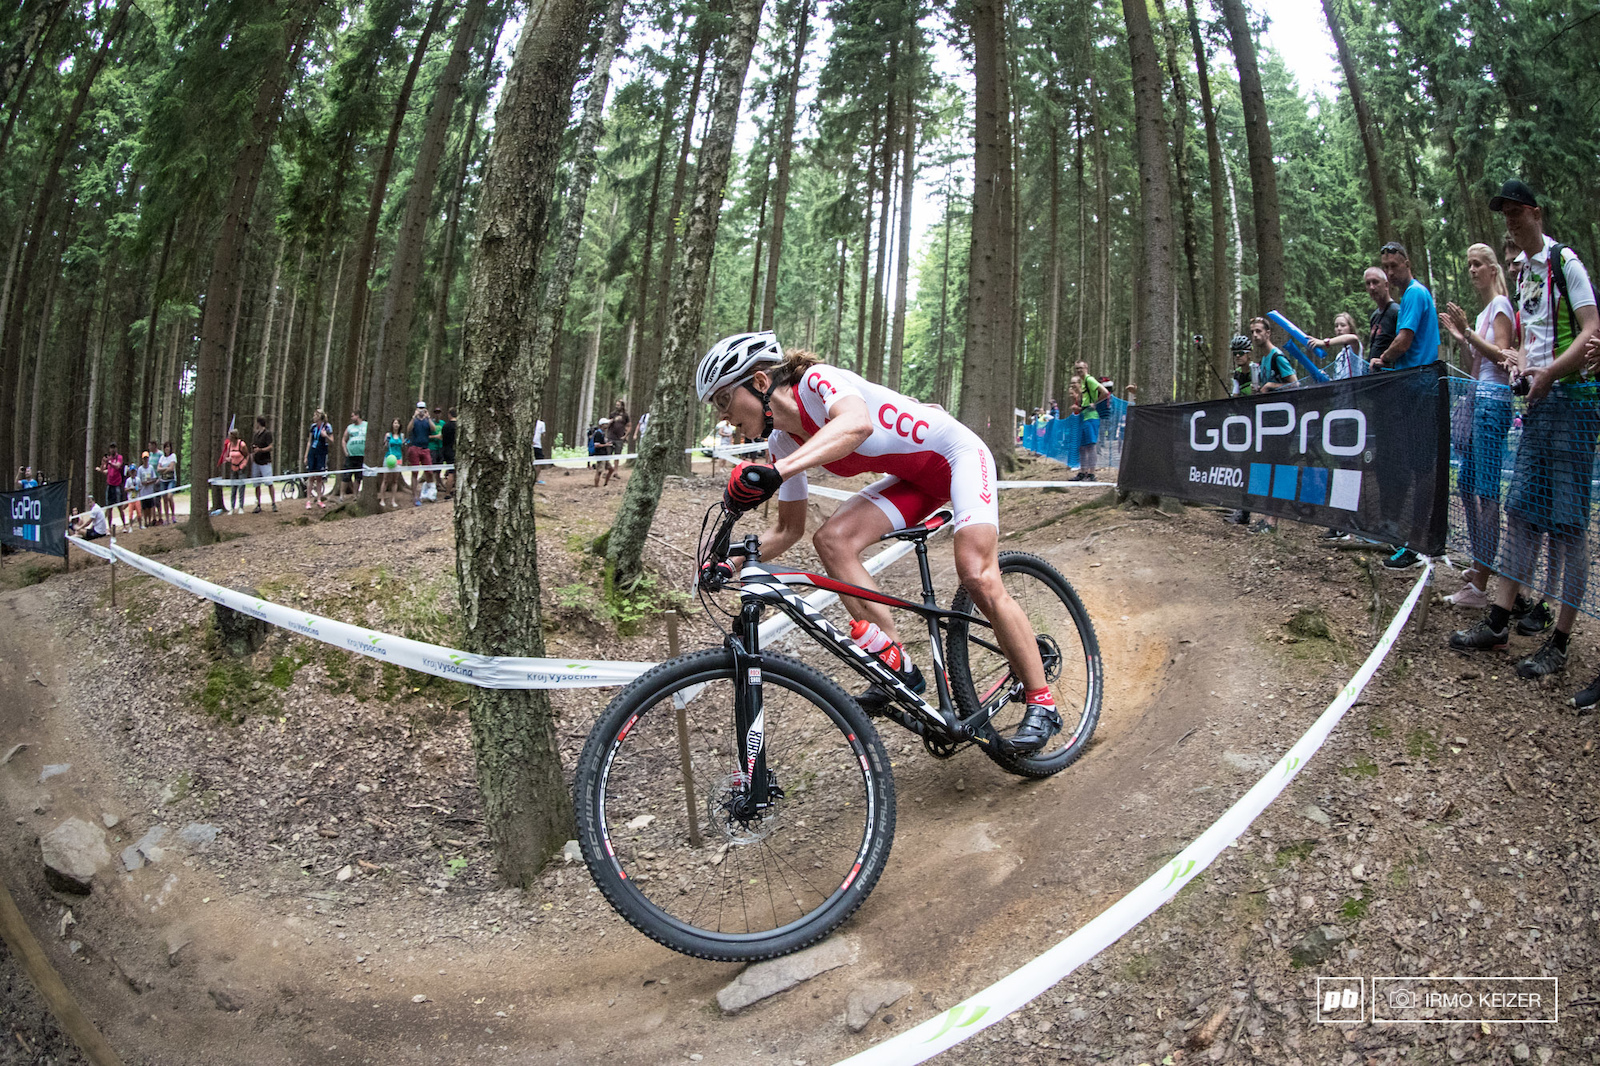 Maja Wloszczowska is in form but bad luck struck again as she flatted when riding in second.